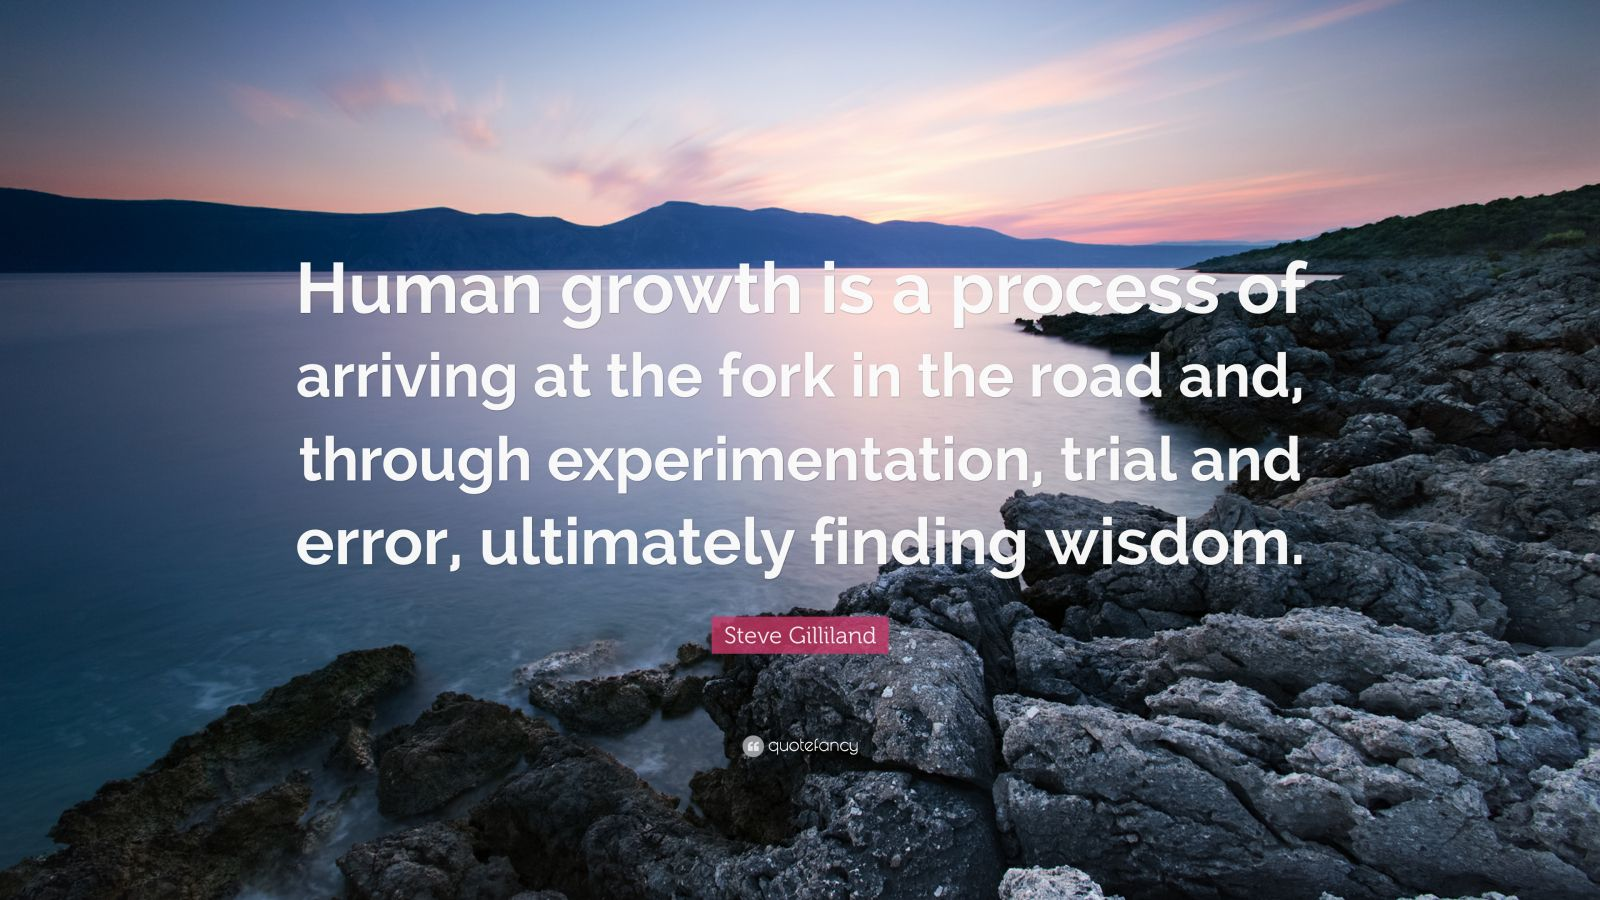 """Steve Gilliland Quote: """"Human growth is a process of arriving at the fork in the road and, through experimentation, trial and error, ultimately finding wisdom."""""""